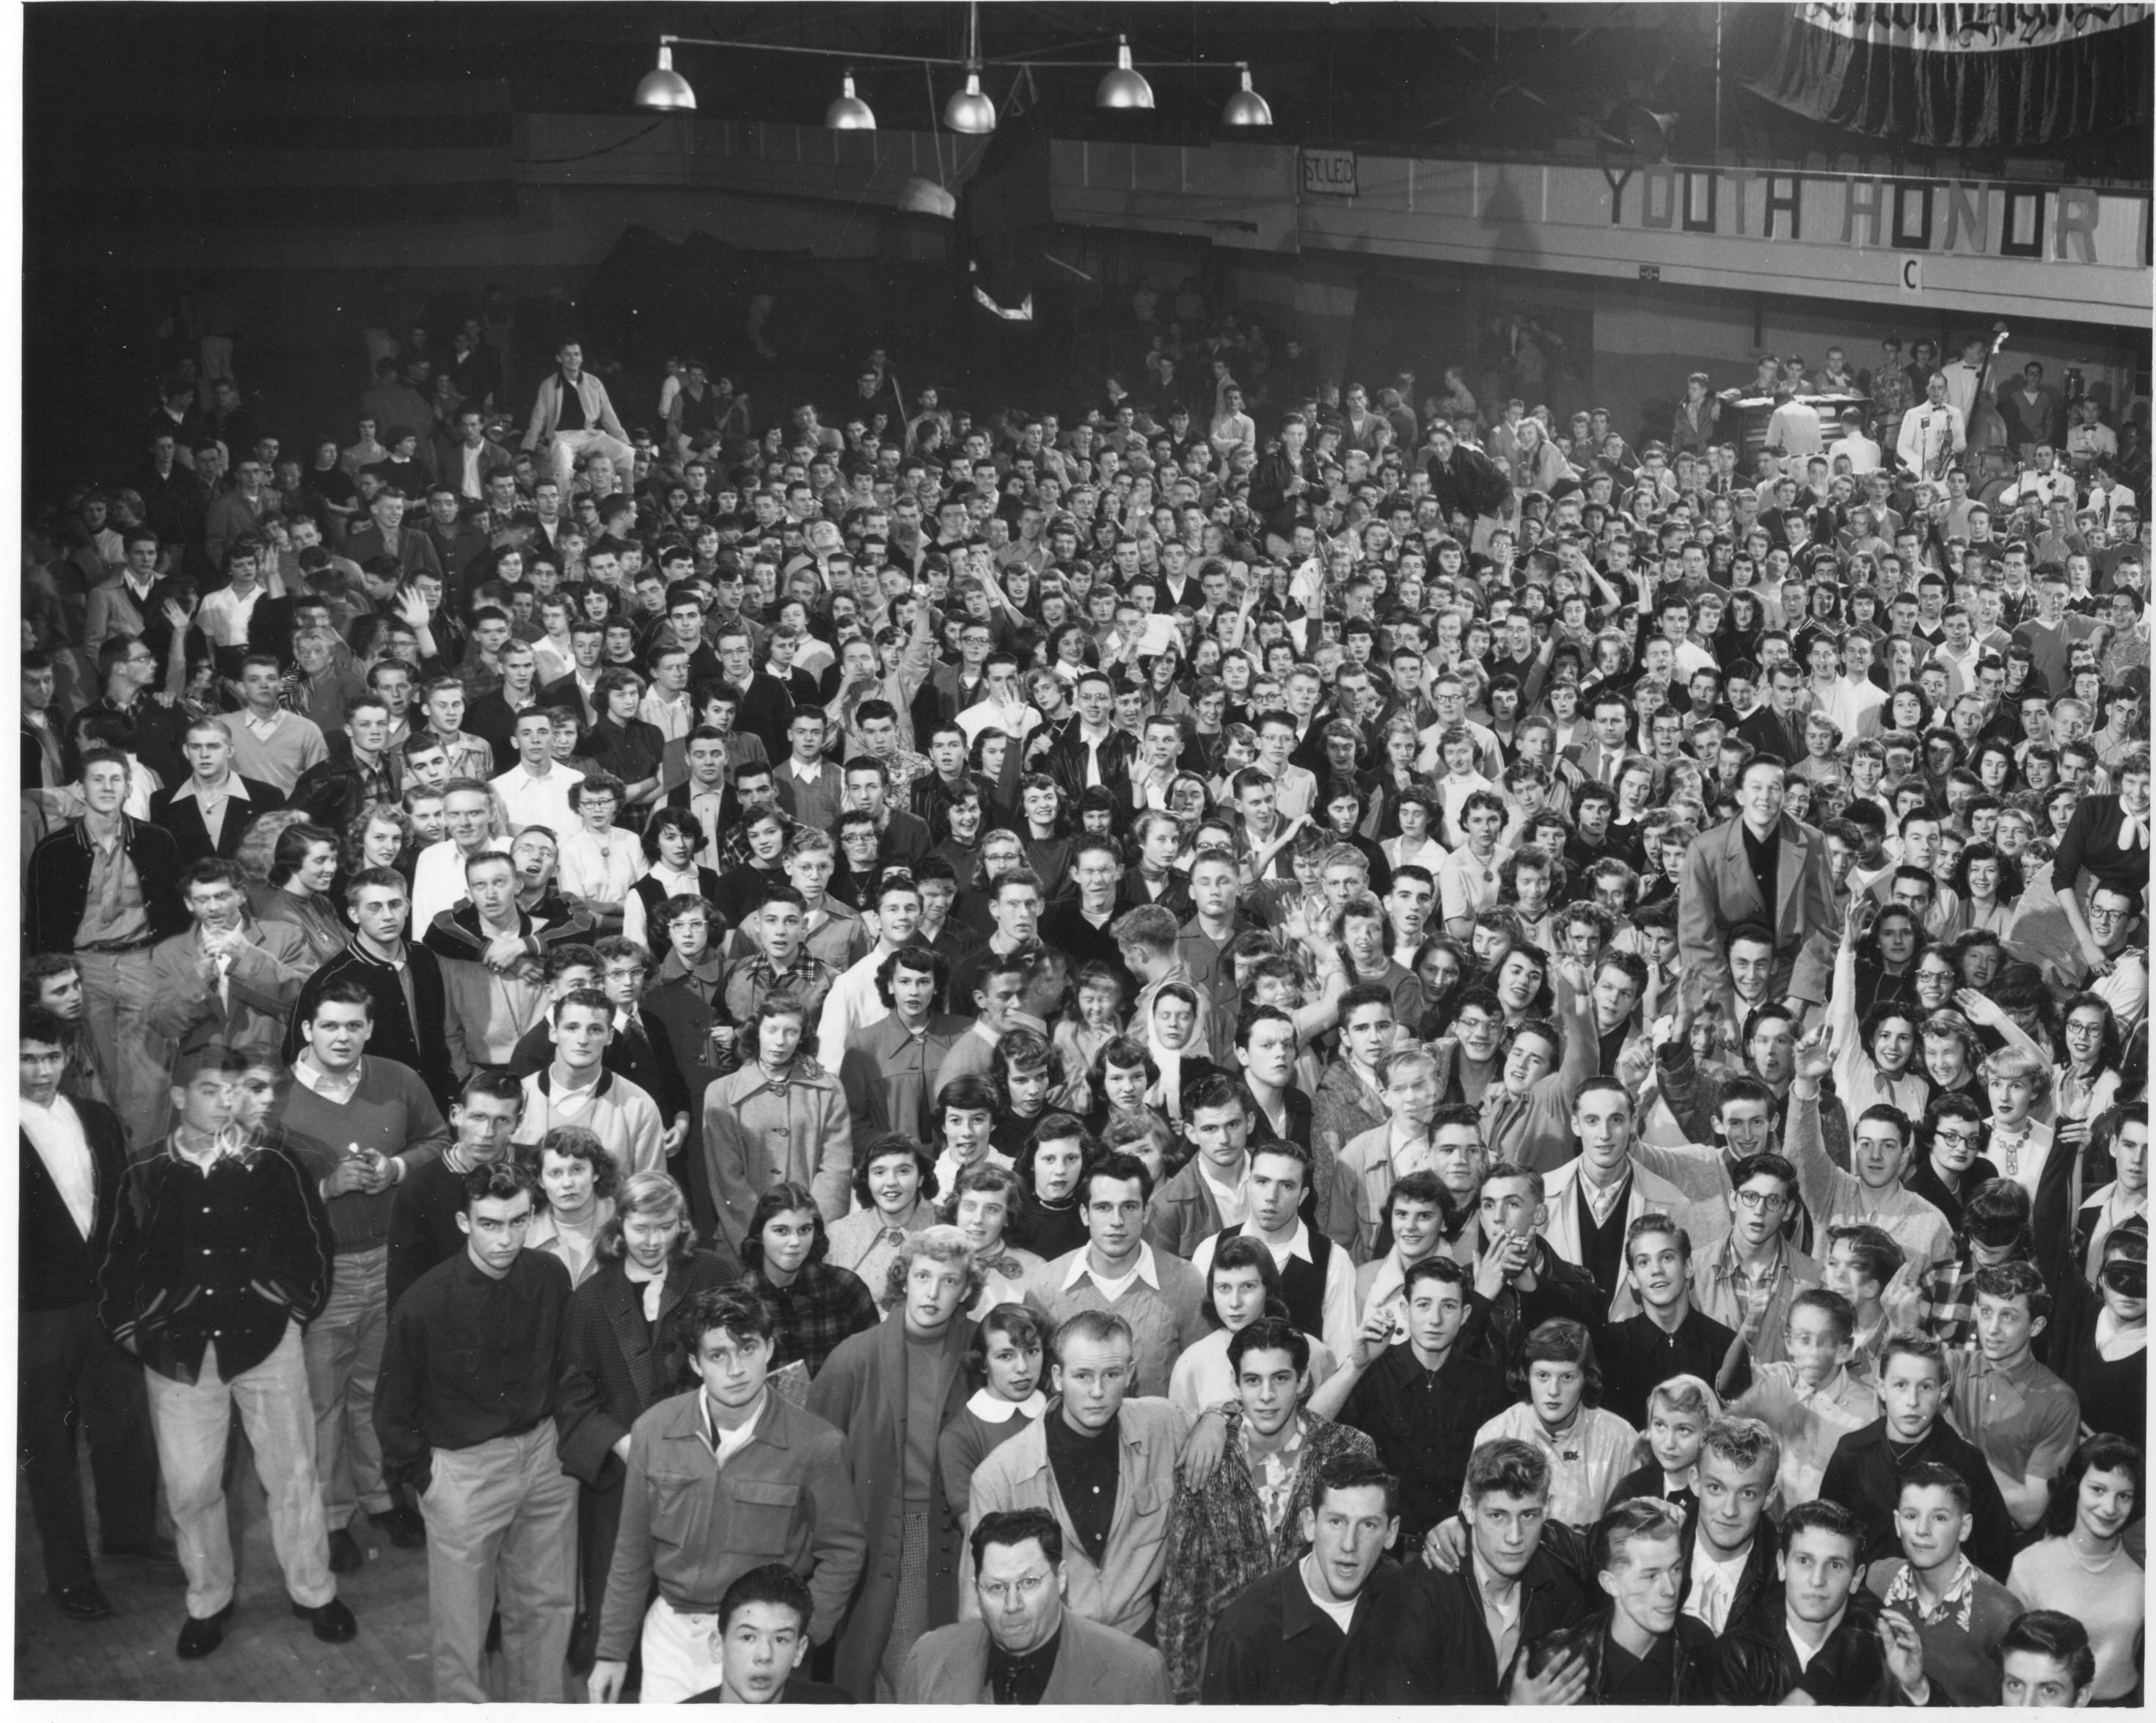 This photograph shows part of the crowd of 2,800 teenage Tacomans who spent their Halloween evening in 1951 at the Tacoma Armory, 715 South 11th Street. Working with the Metropolitan Park District and the Tacoma Police, the Tacoma Moose Lodge sponsored the third annual all-city high school dance to give Tacoma's young people someplace safe to go after dark. The dance was from 8 to 11:30 p.m. with music provided by Larry Carino and his orchestra, one of the best 10 piece bands in the area. Police later said that the evening was one of the quietist on record.